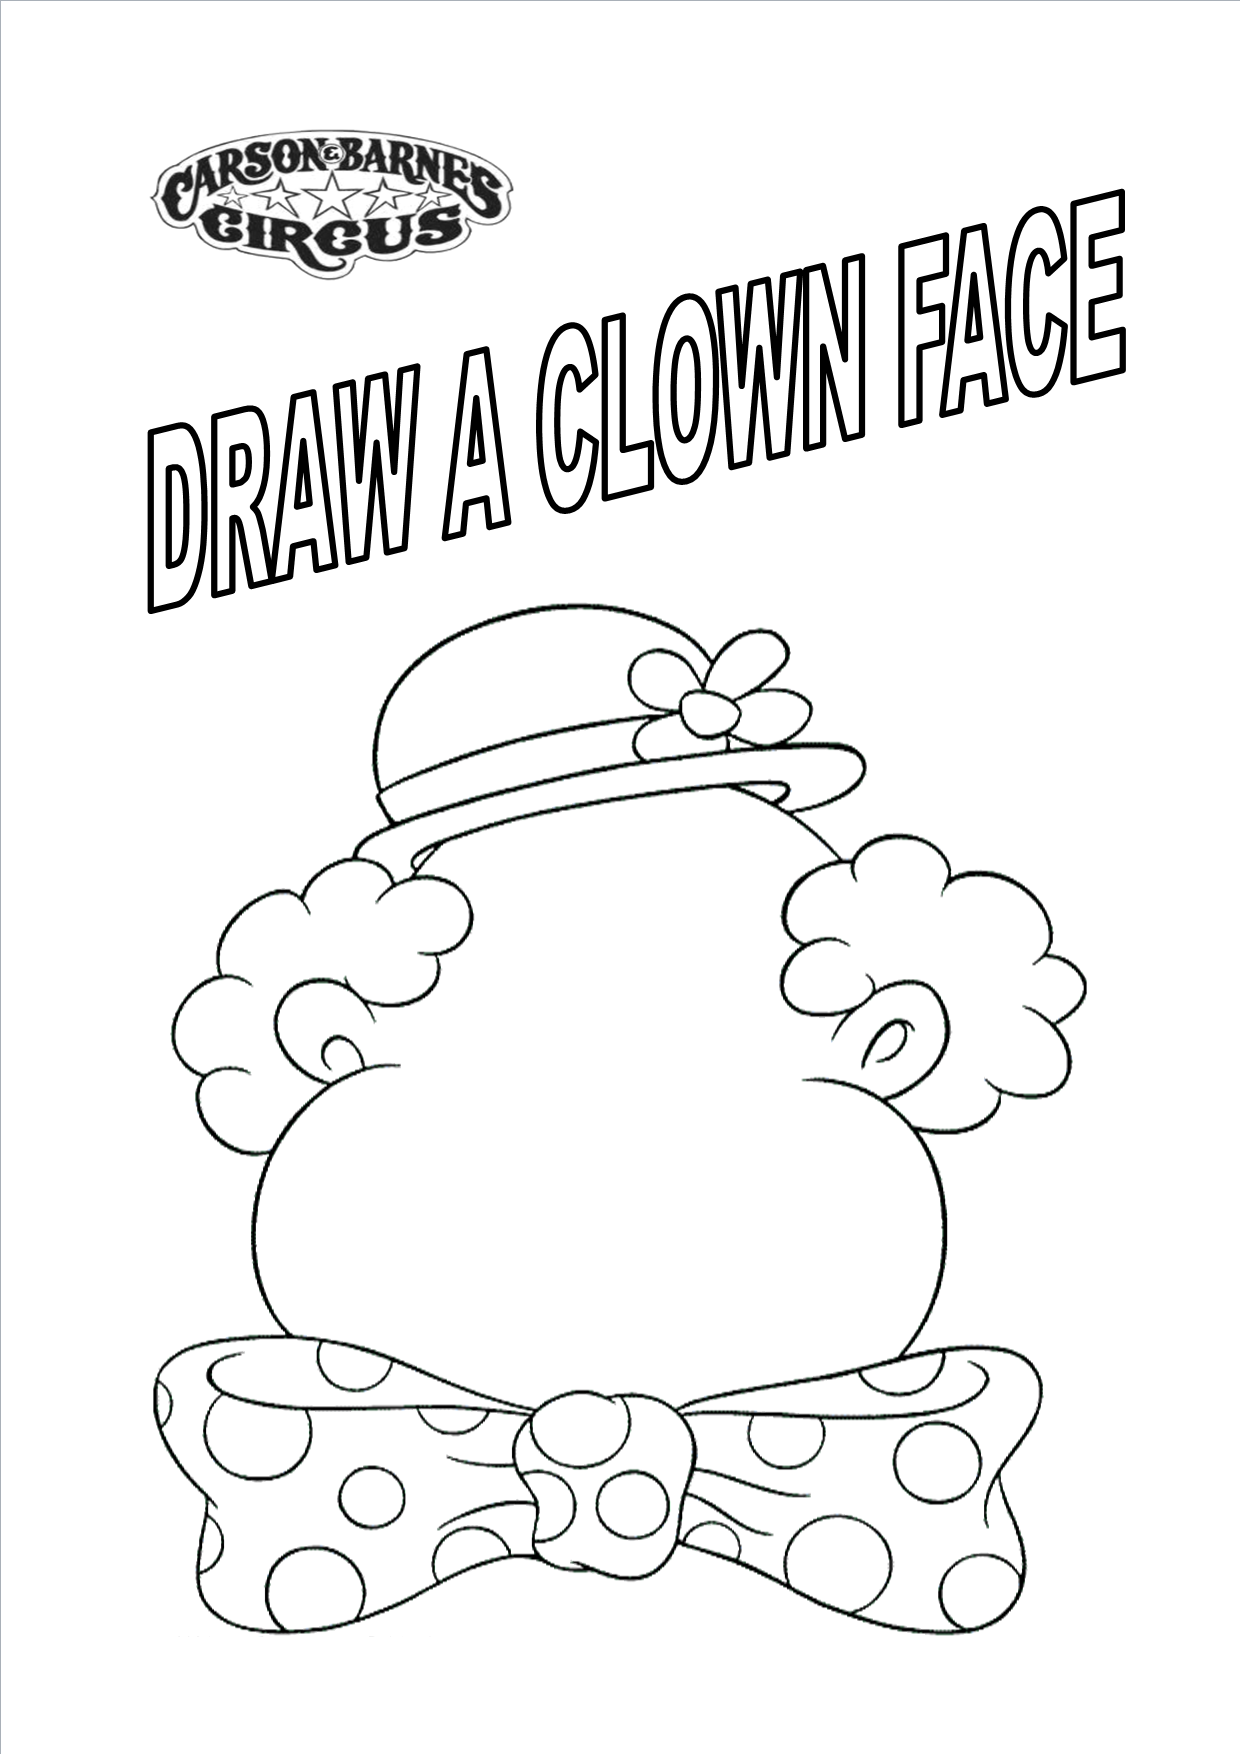 circus coloring pages kids printable circus coloring page the graphics fairy pages free circus circus coloring pages coloring pages free printable book